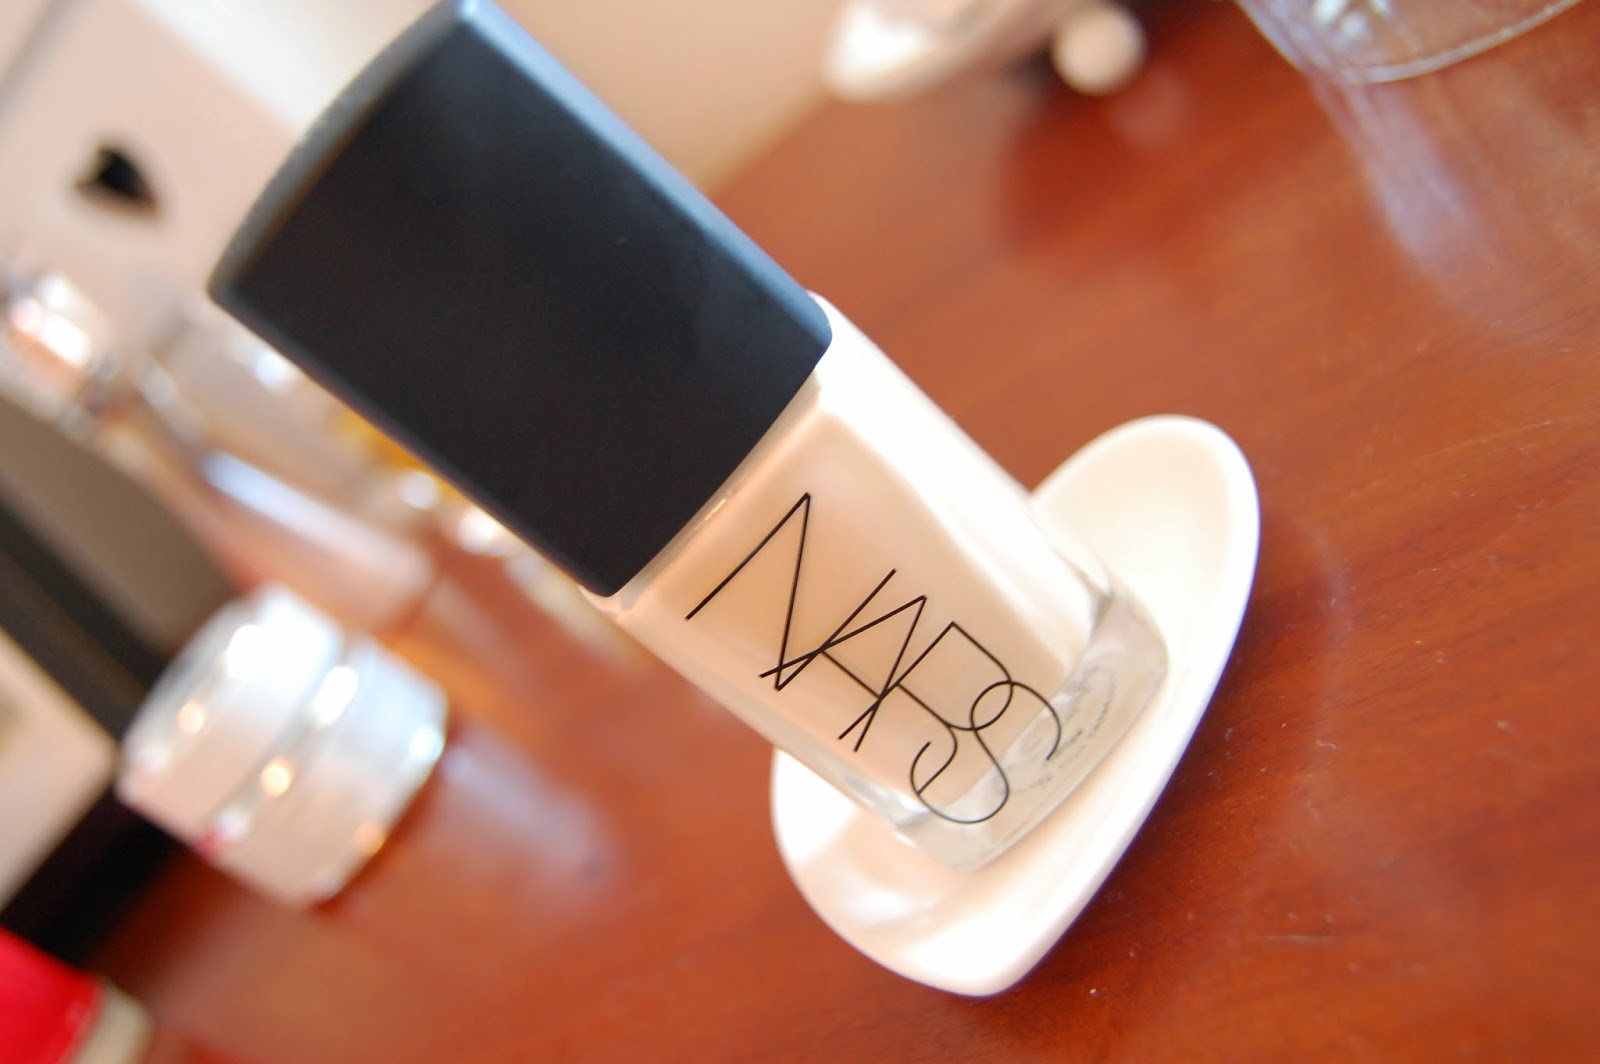 See my Nars Sheer Glow review here